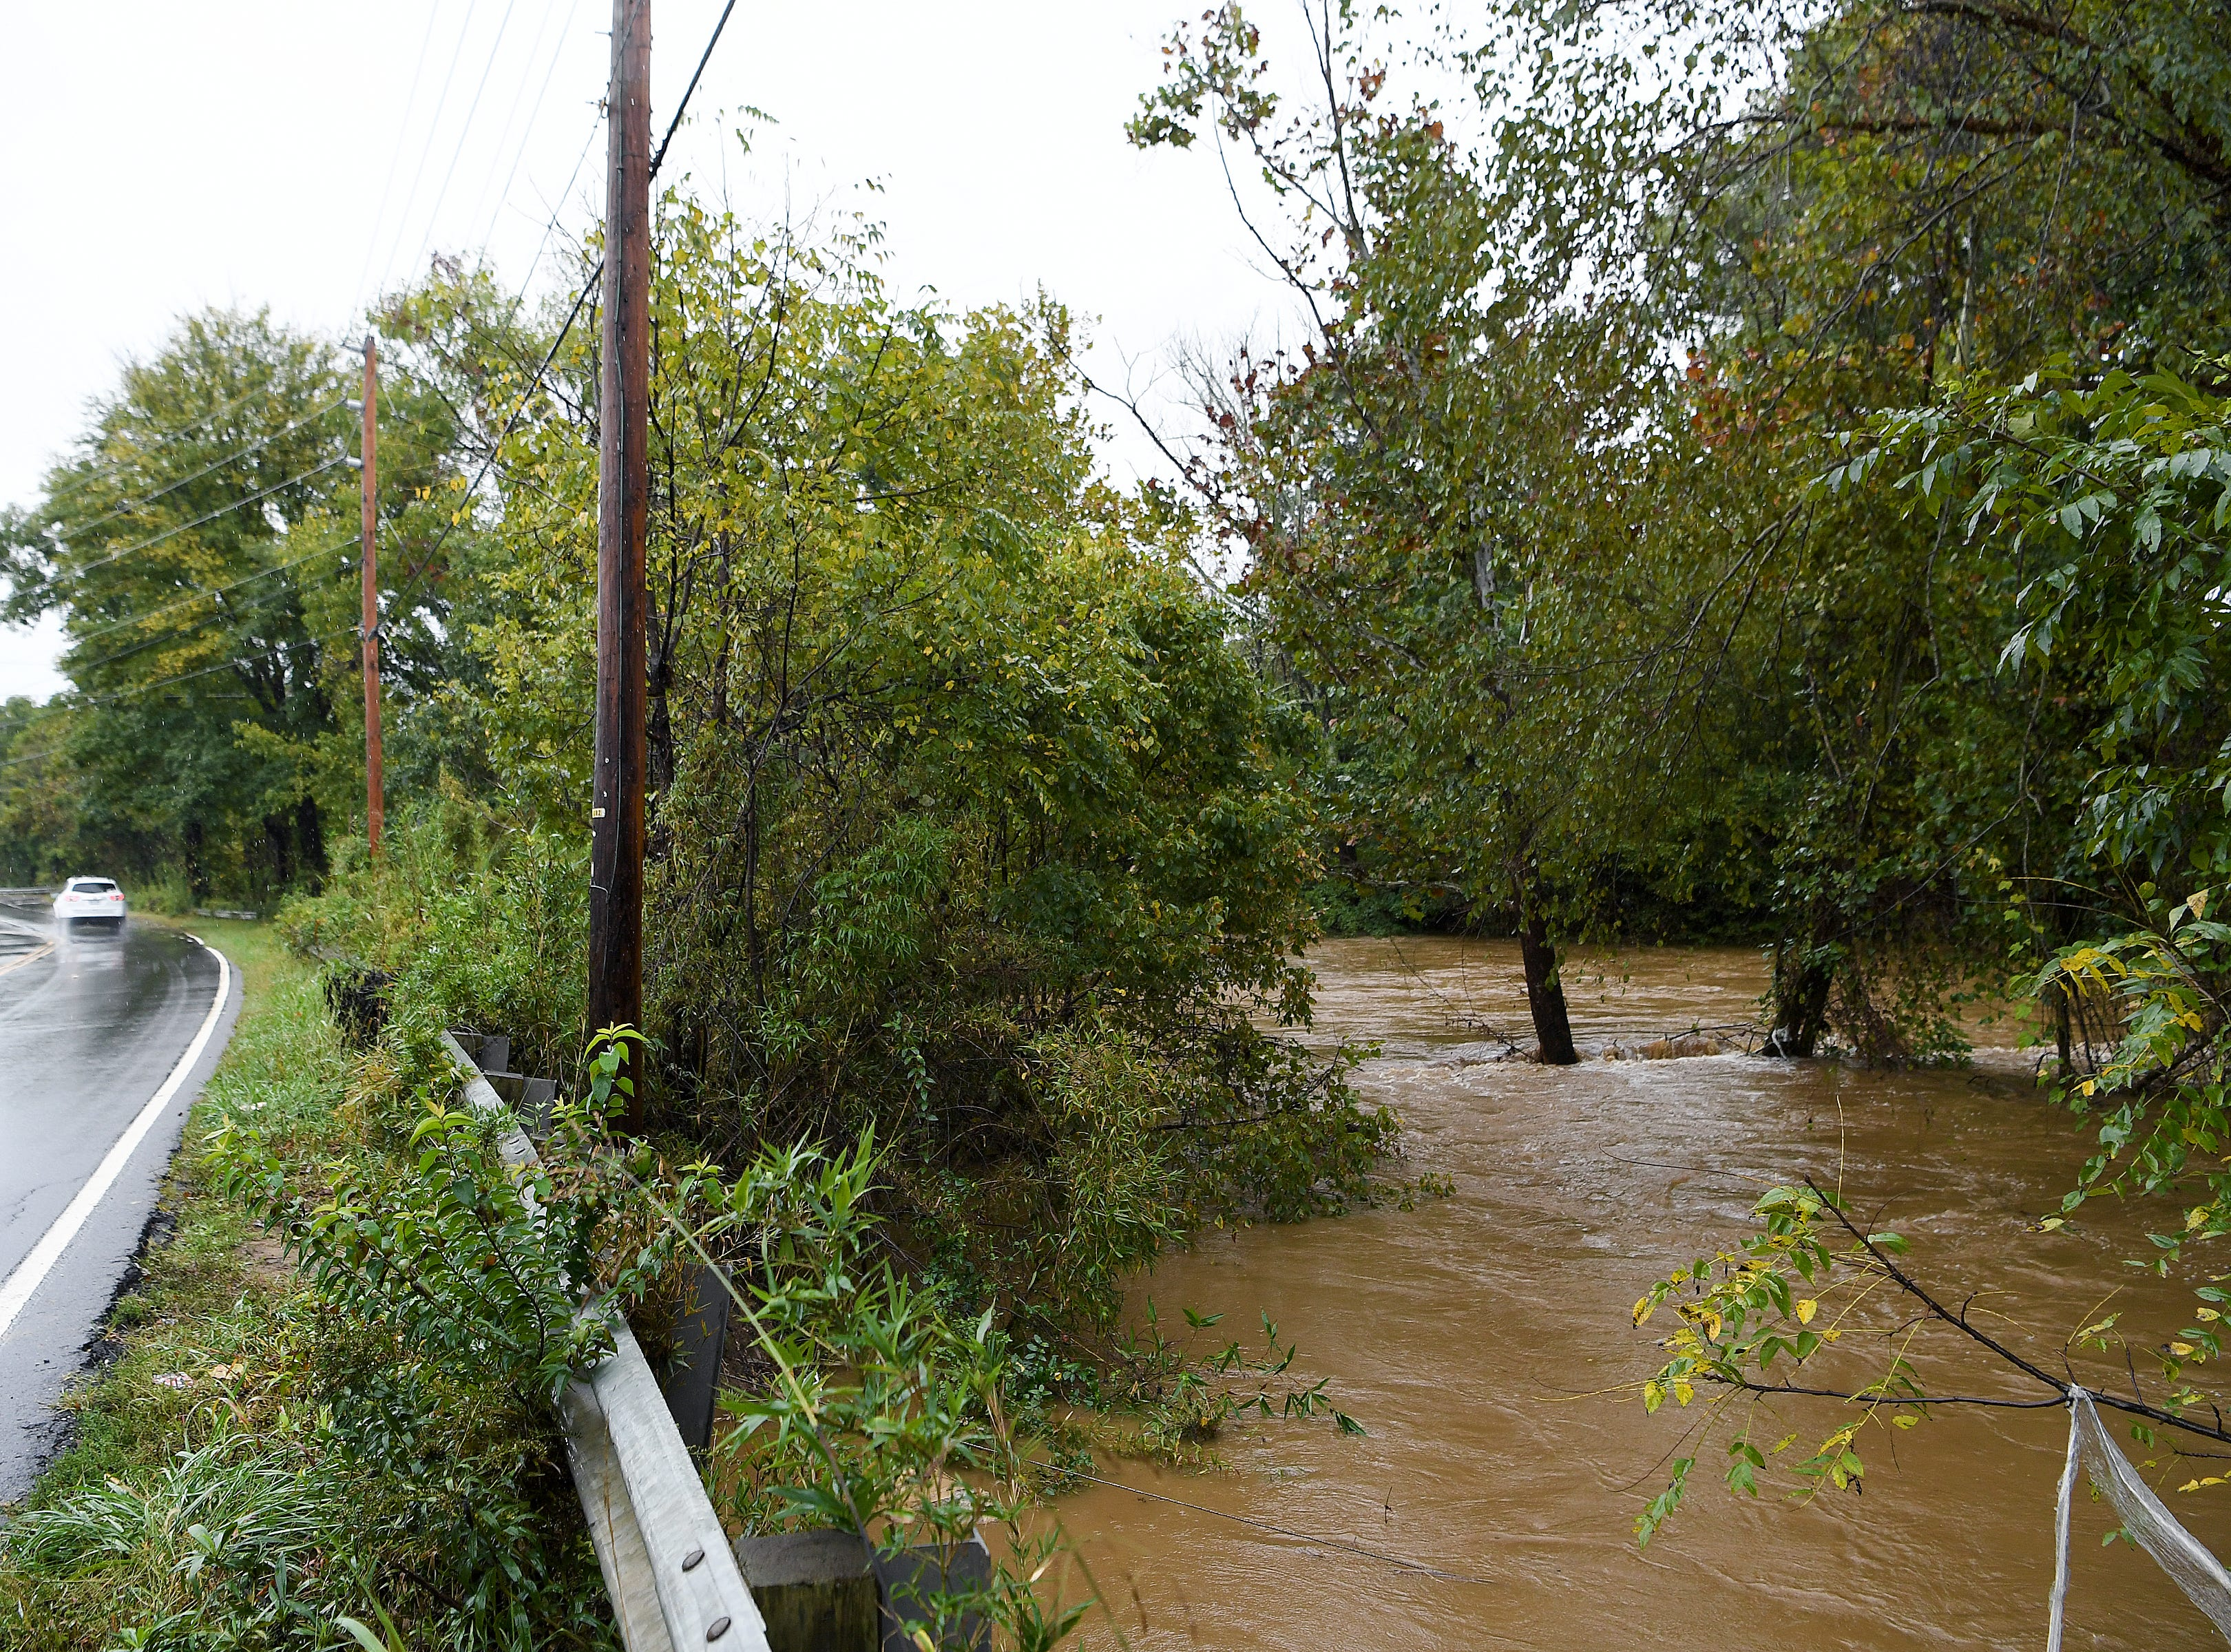 The Swannanoa River swells toward Swannanoa River Road as traffic is allowed to pass following a water rescue by the Asheville Fire Department of two people trapped in a hammock by flood water at a makeshift camp on Oct. 11, 2018.